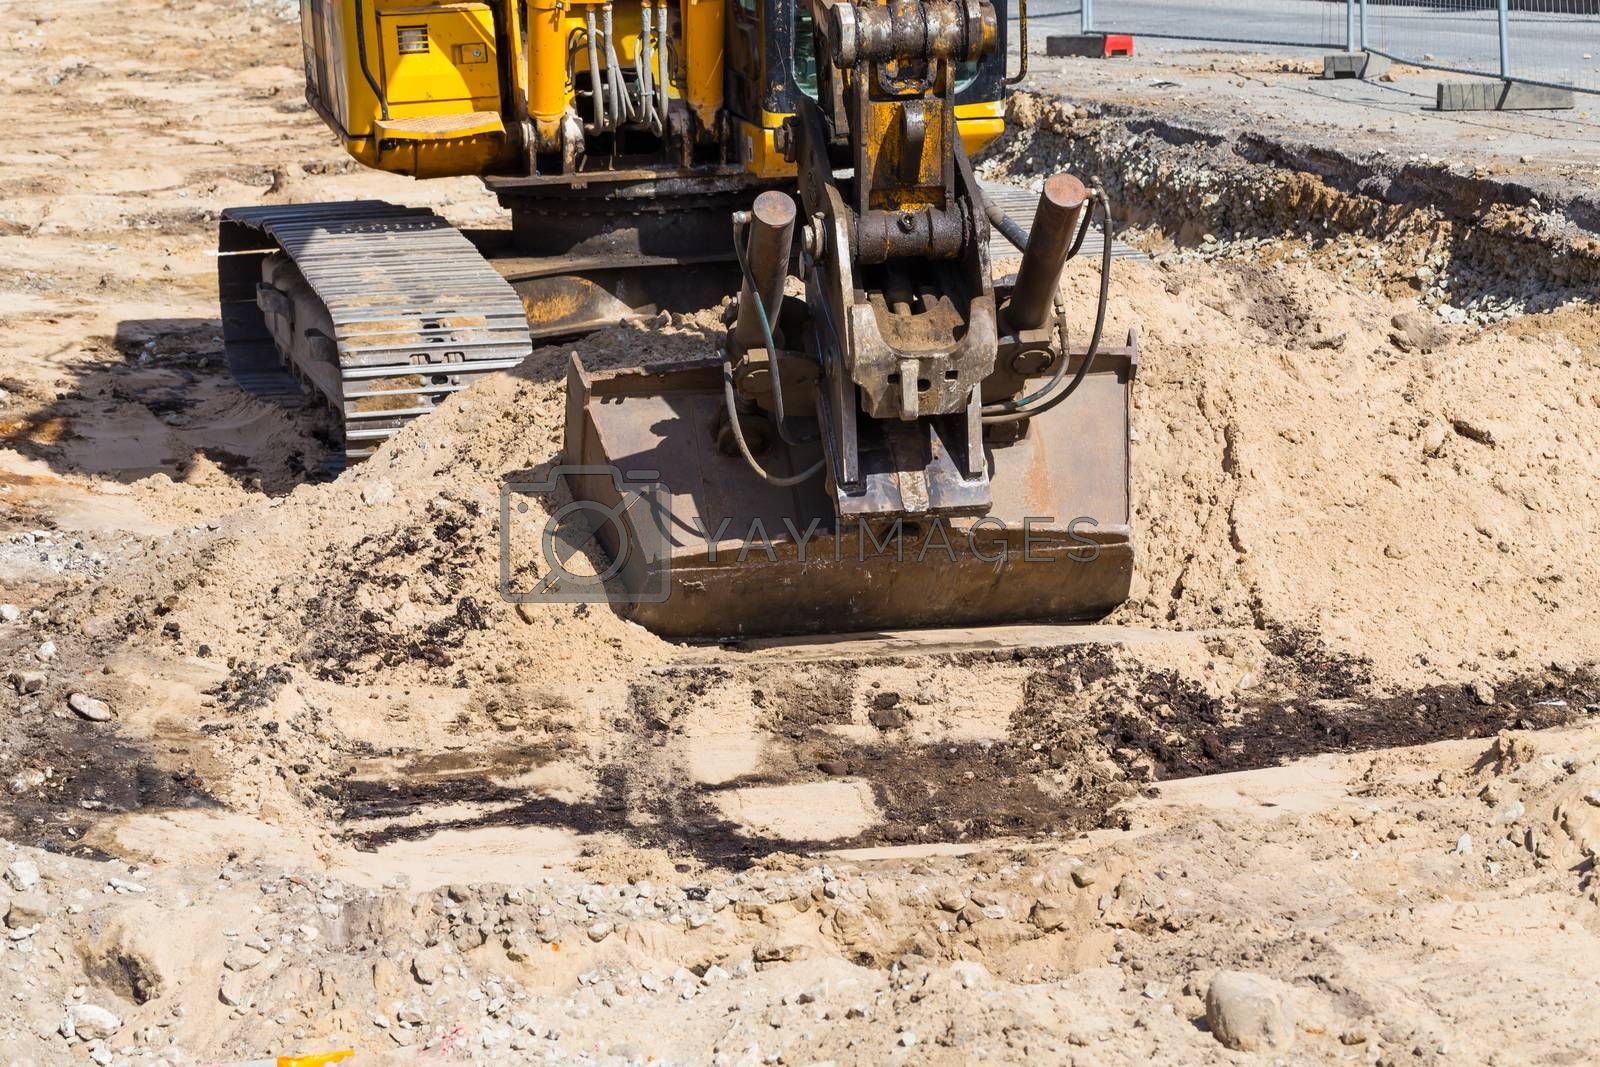 Royalty free image of heavy duty, industrial excavator moving soil and sand on road  by RTsubin